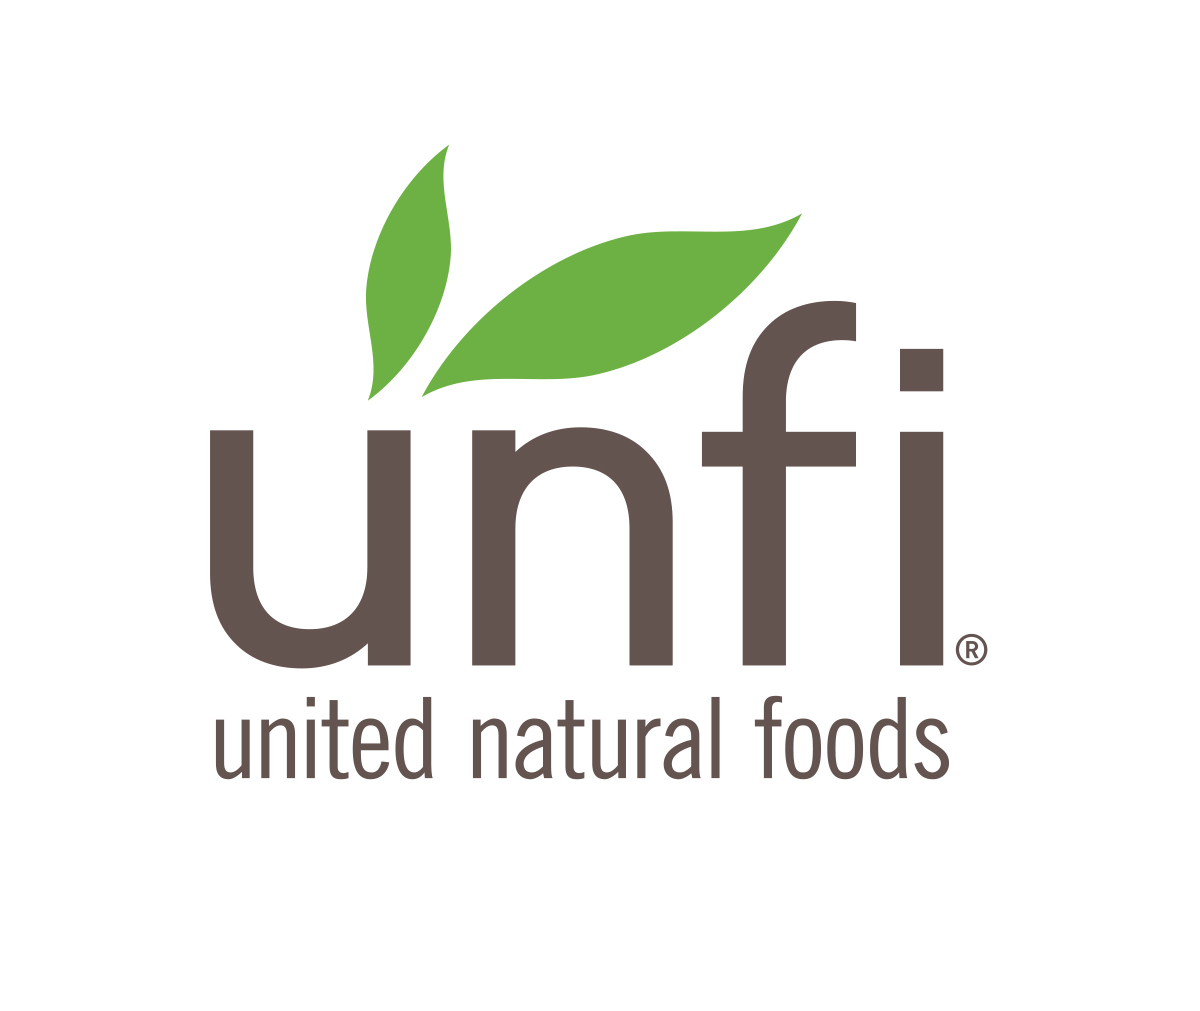 UNITED NATURAL FOODS reported net income of $38.9 million for its fiscal fourth quarter, an increase of 12.1 percent over the same fiscal 2016 period.